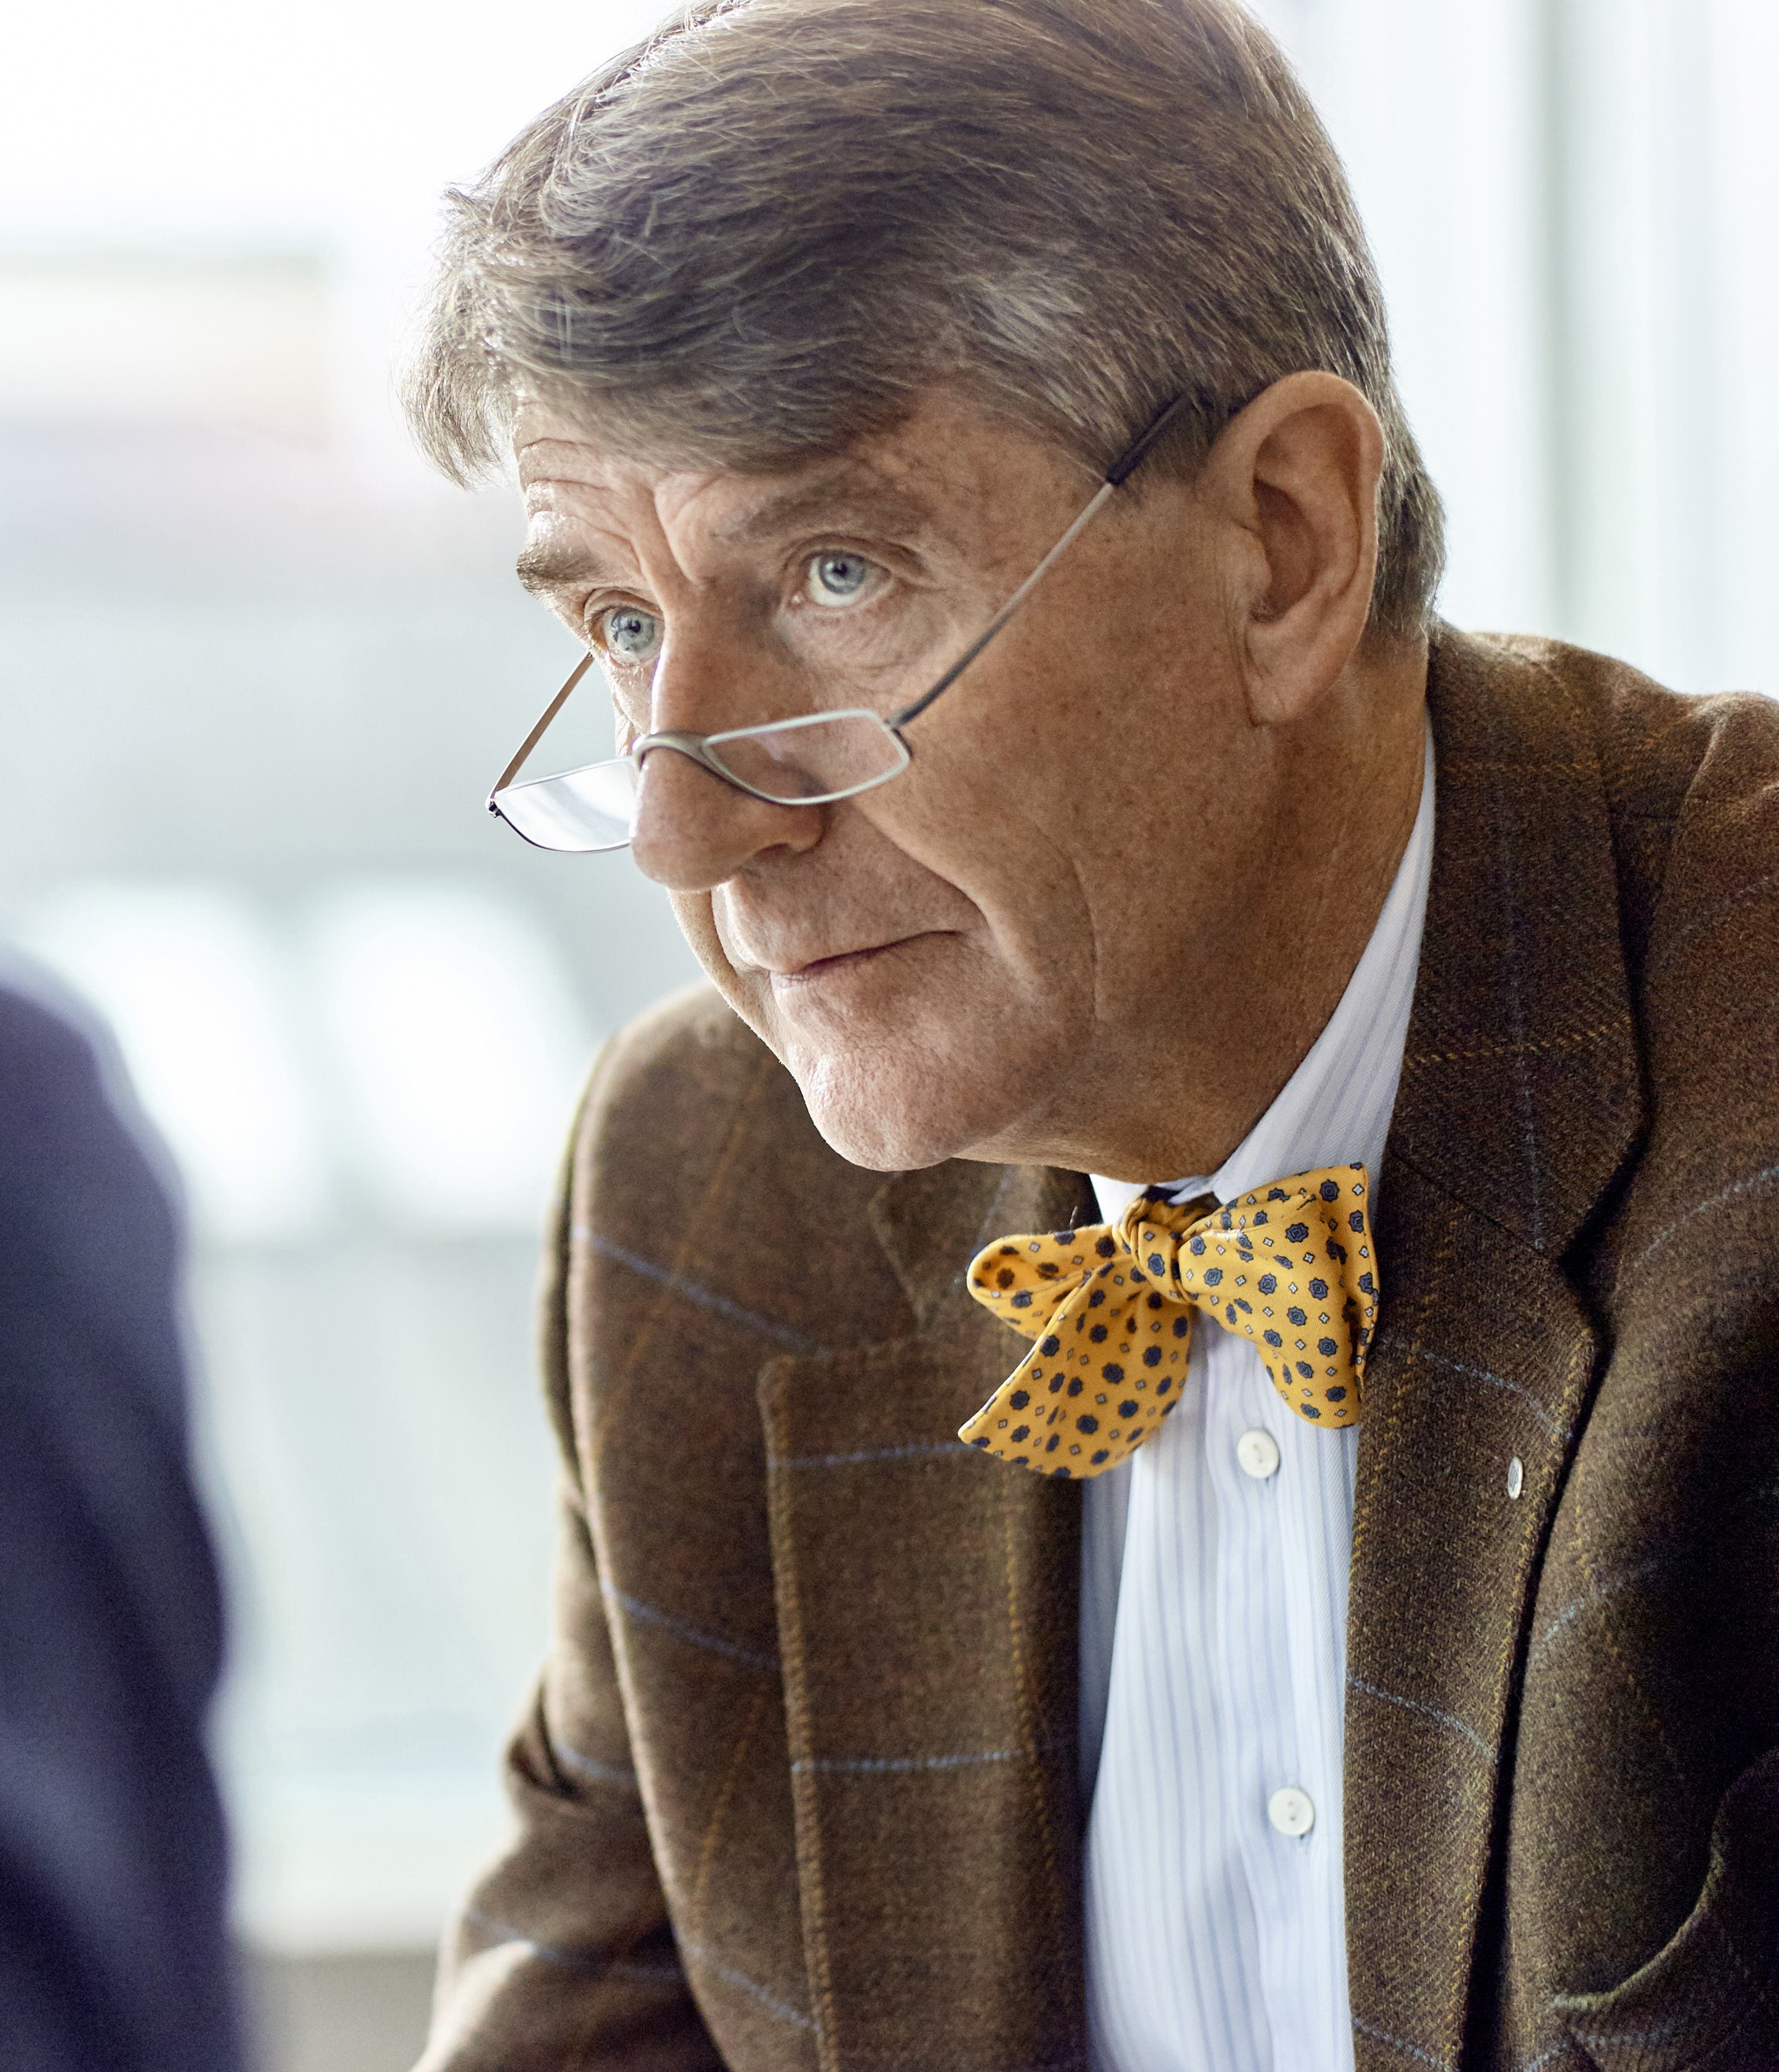 Univ.-Prof. ATP-CEO Christoph M. Achammer<br><span class='image_copyright'>ATP/Becker</span><br>